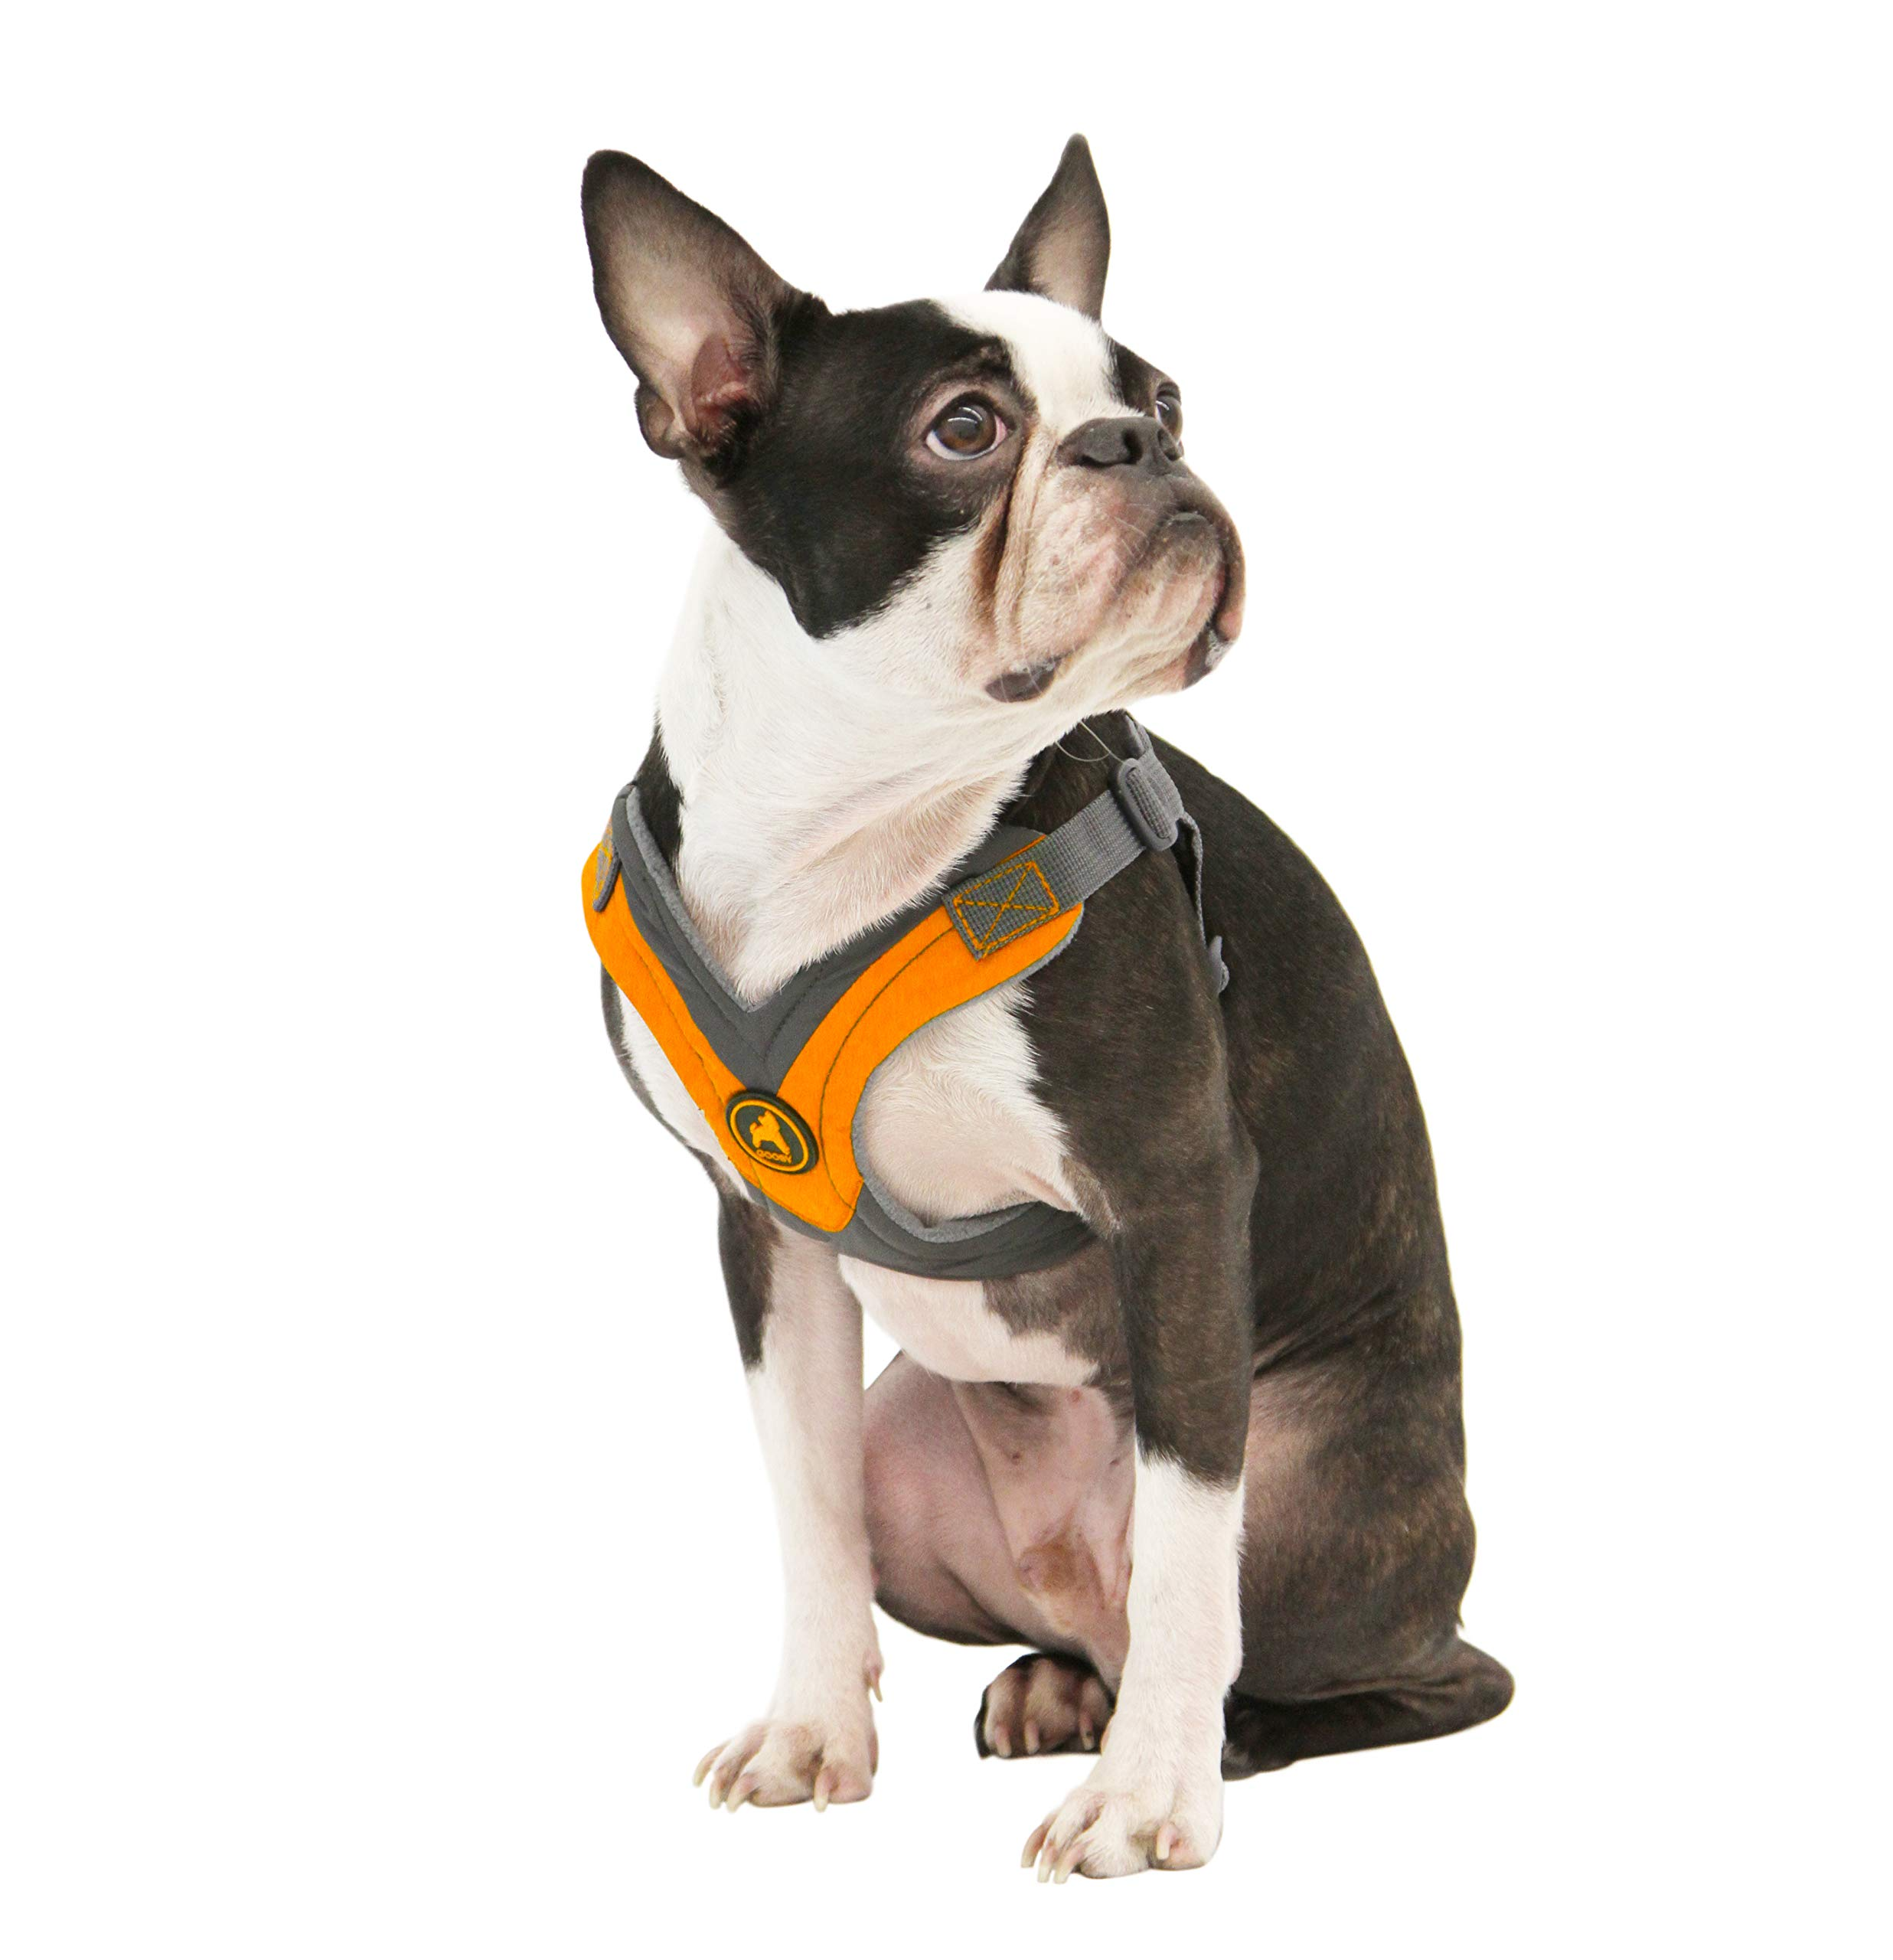 Gooby - Trekking Harness, Small Dog Fleece Lined Harness with Memory Foam Padding, Orange, Small